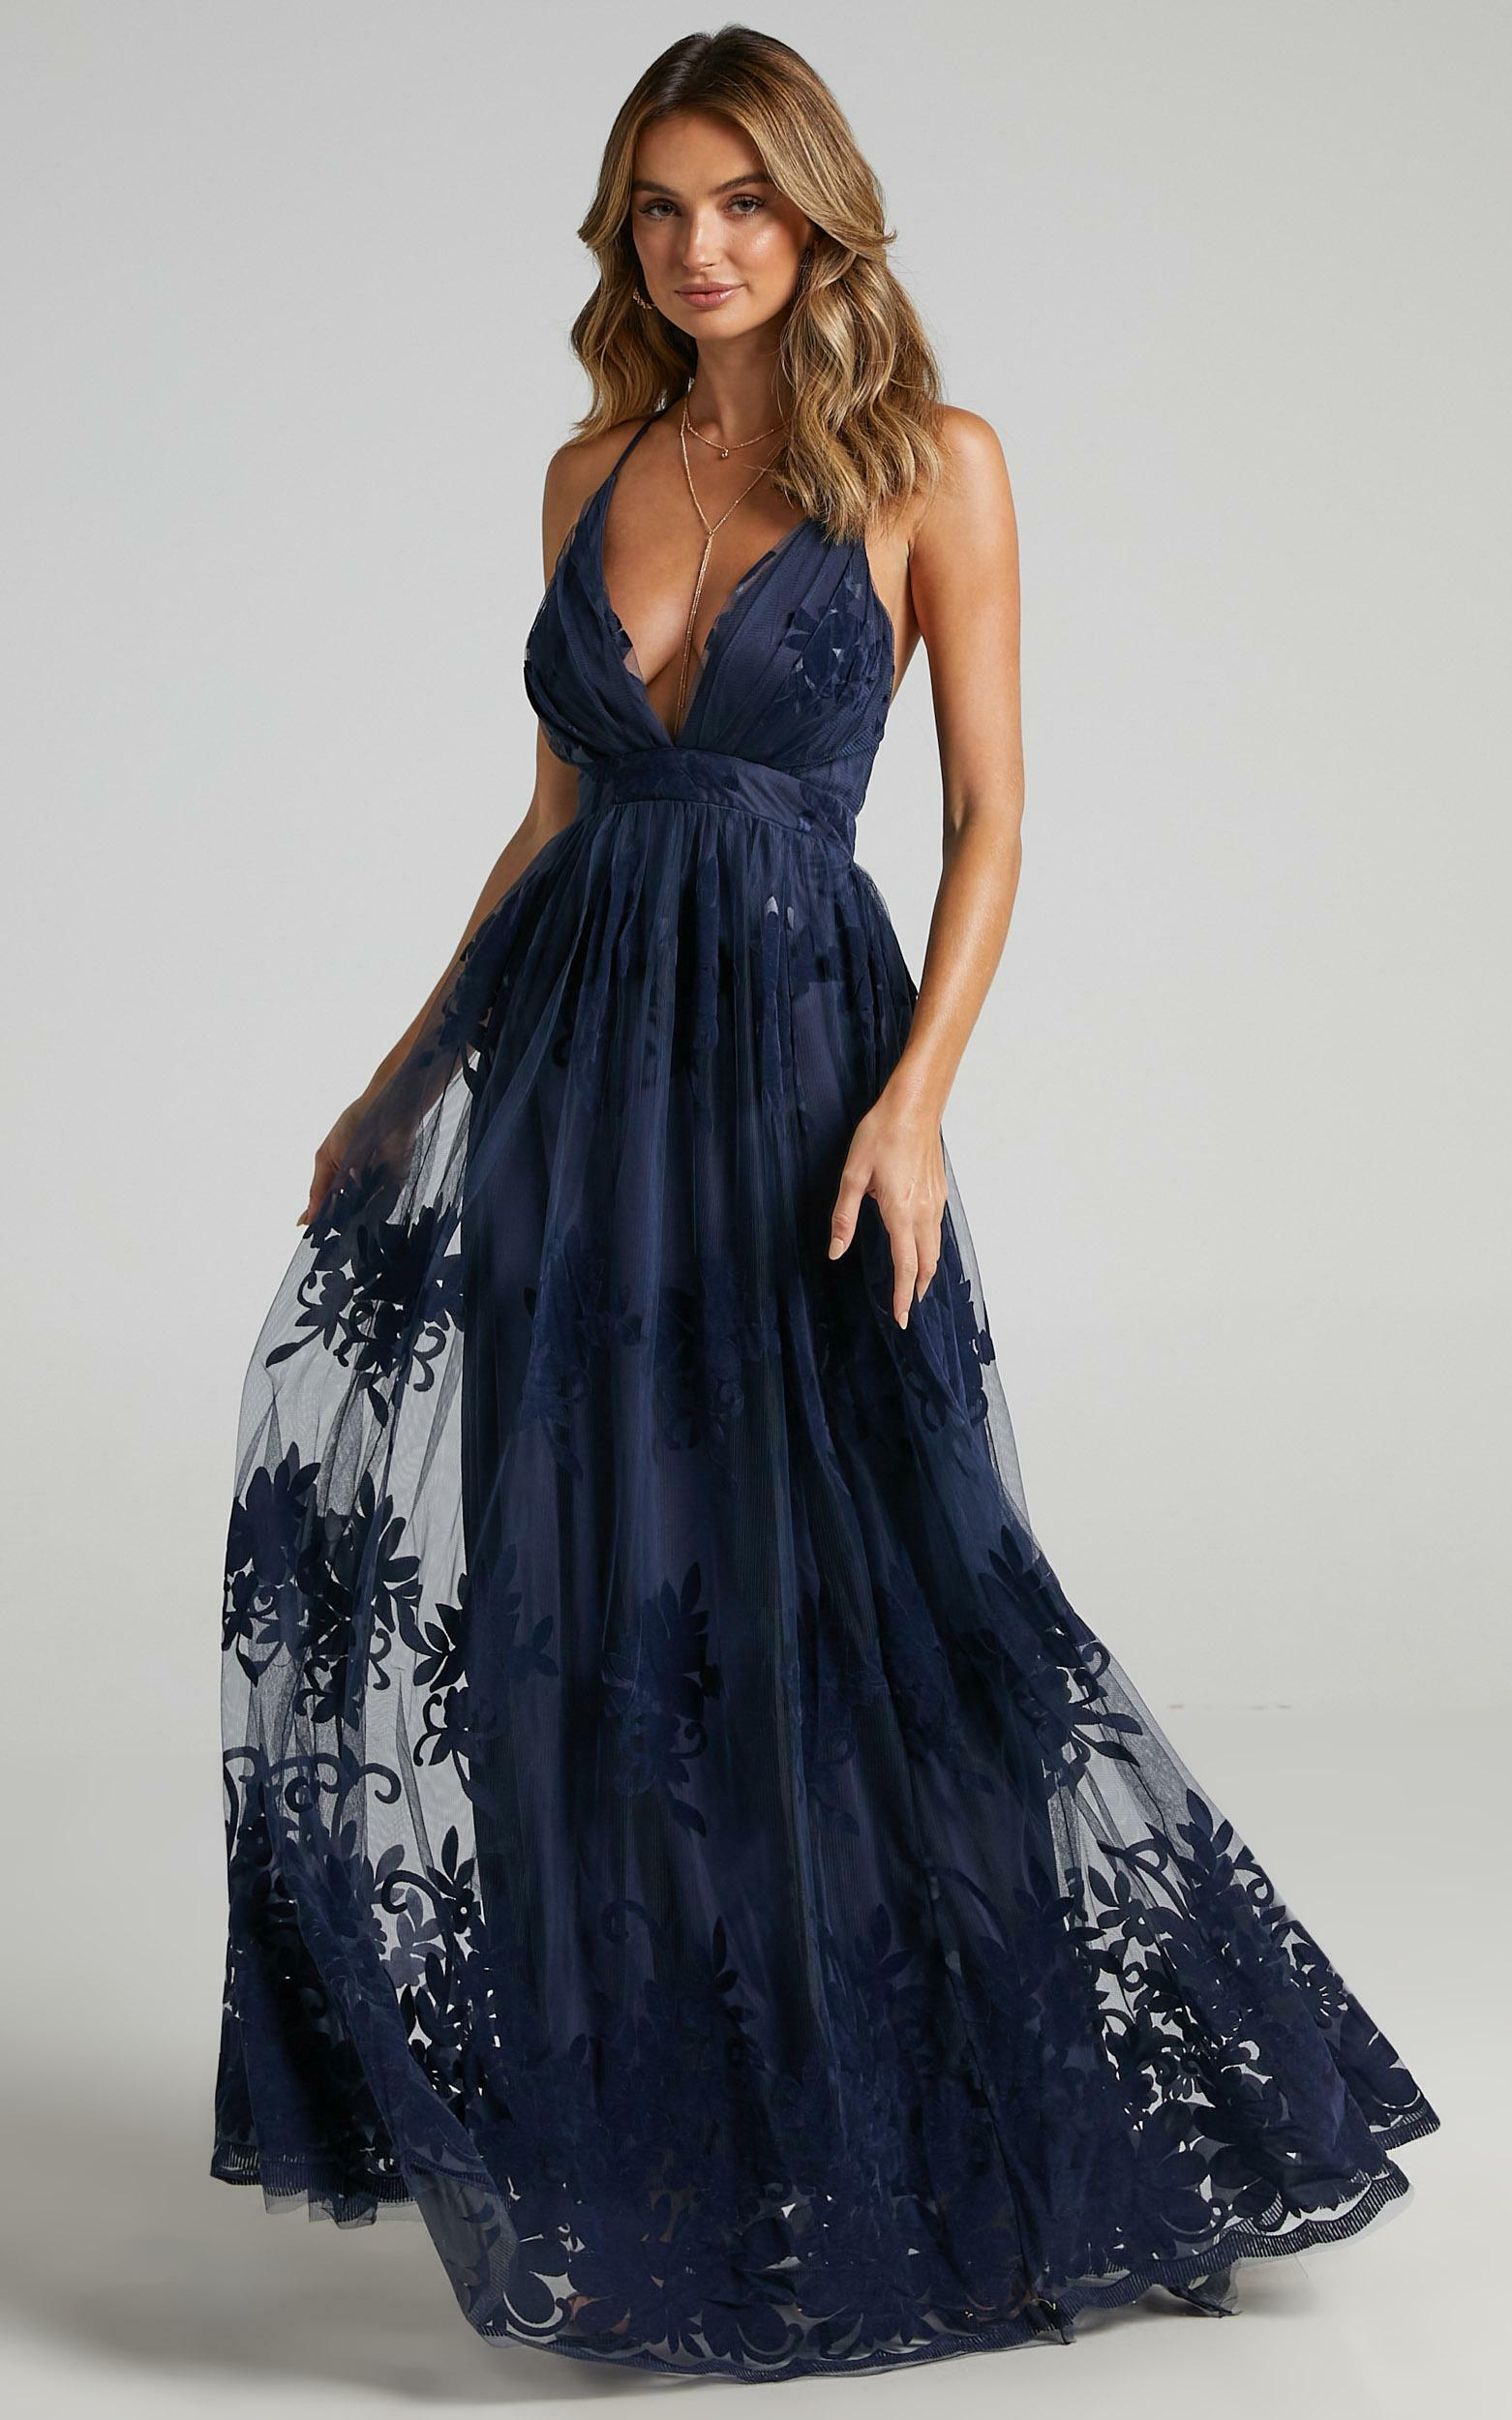 Promenade Maxi Dress in Navy - 08, NVY5, hi-res image number null